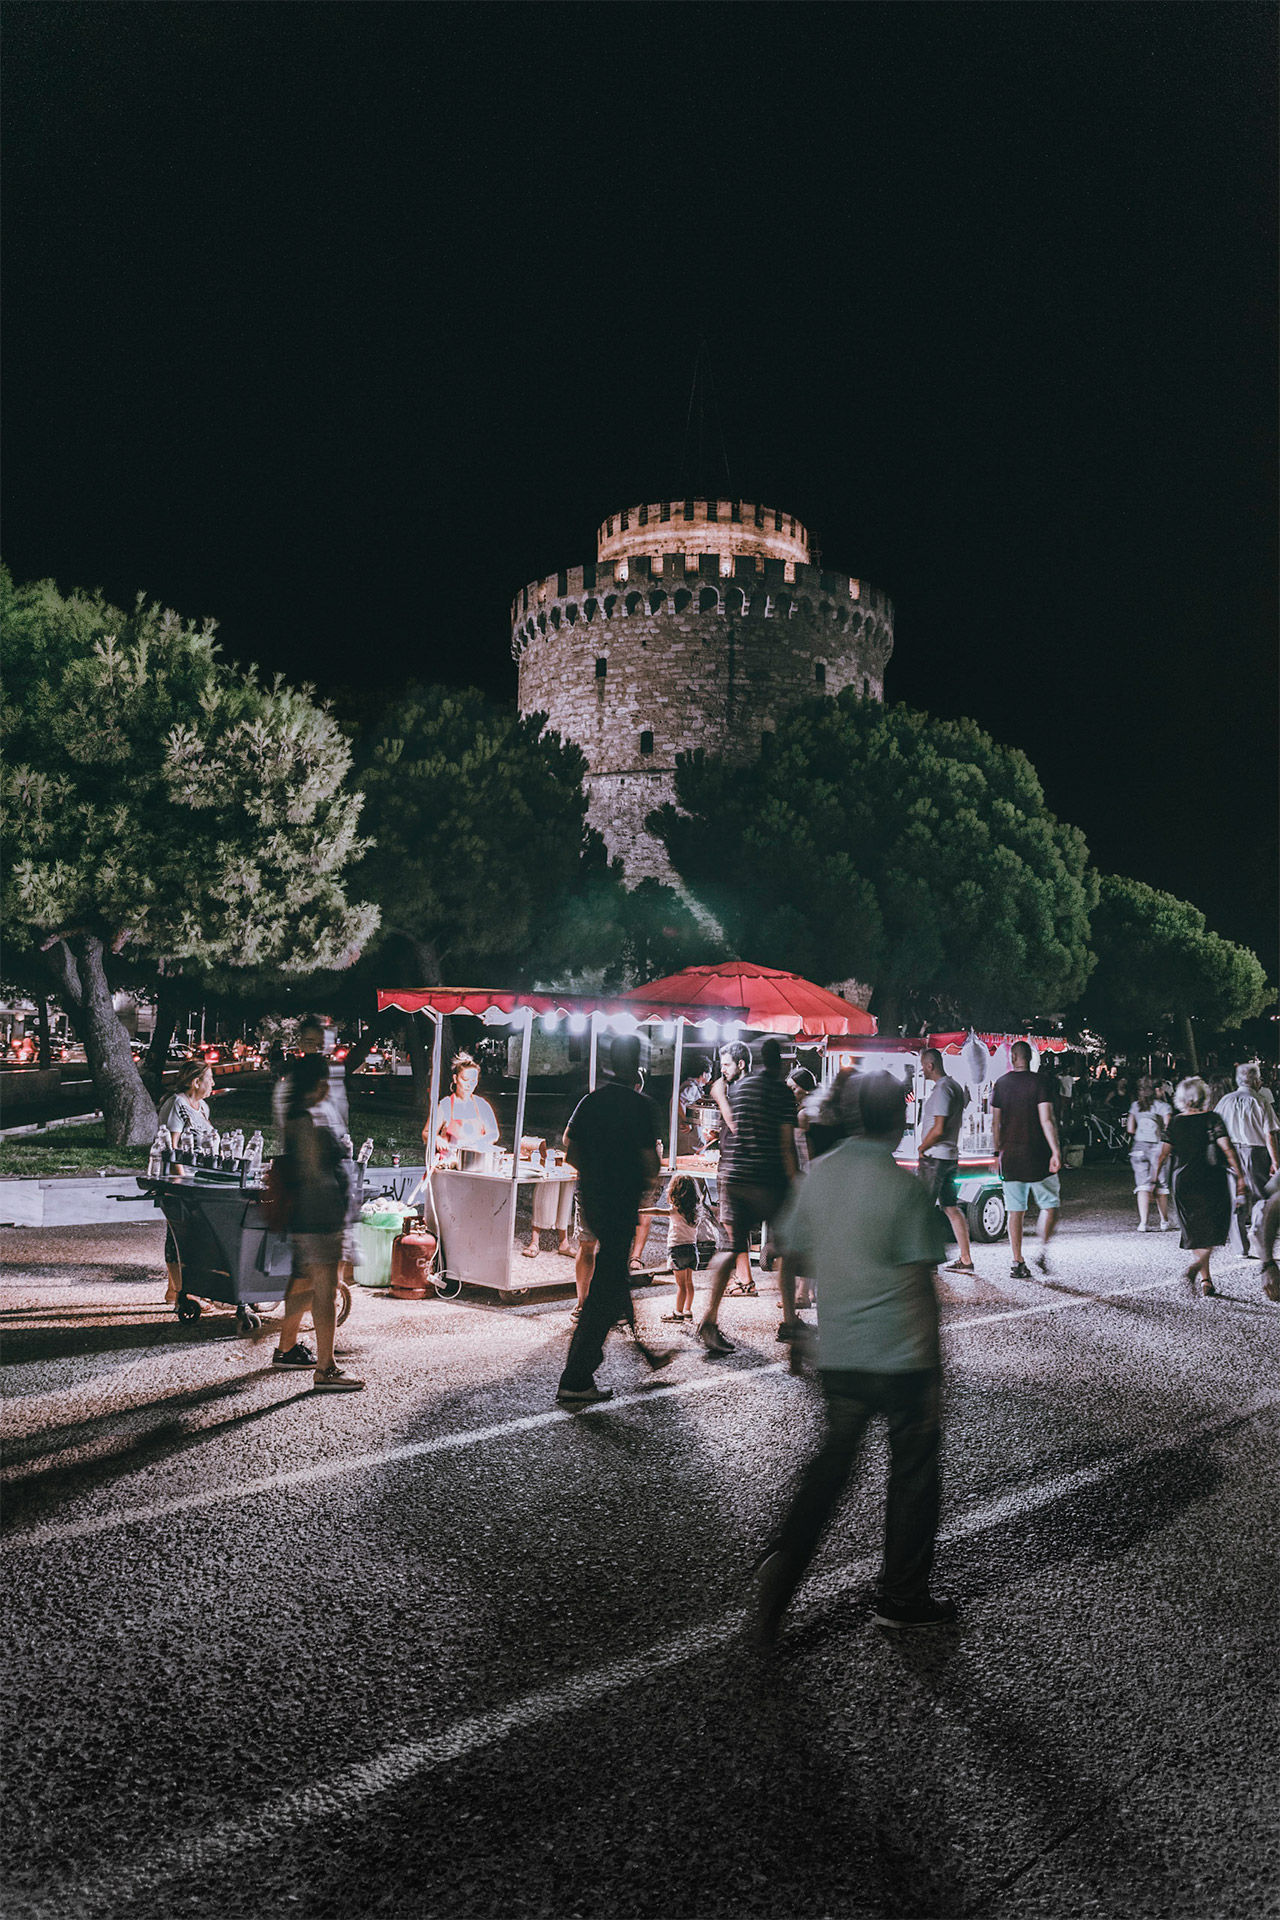 From the Ladadika district past the White Tower and all the way to Thessaloniki Concert Hall it's a favourite hangout for residents and visitors